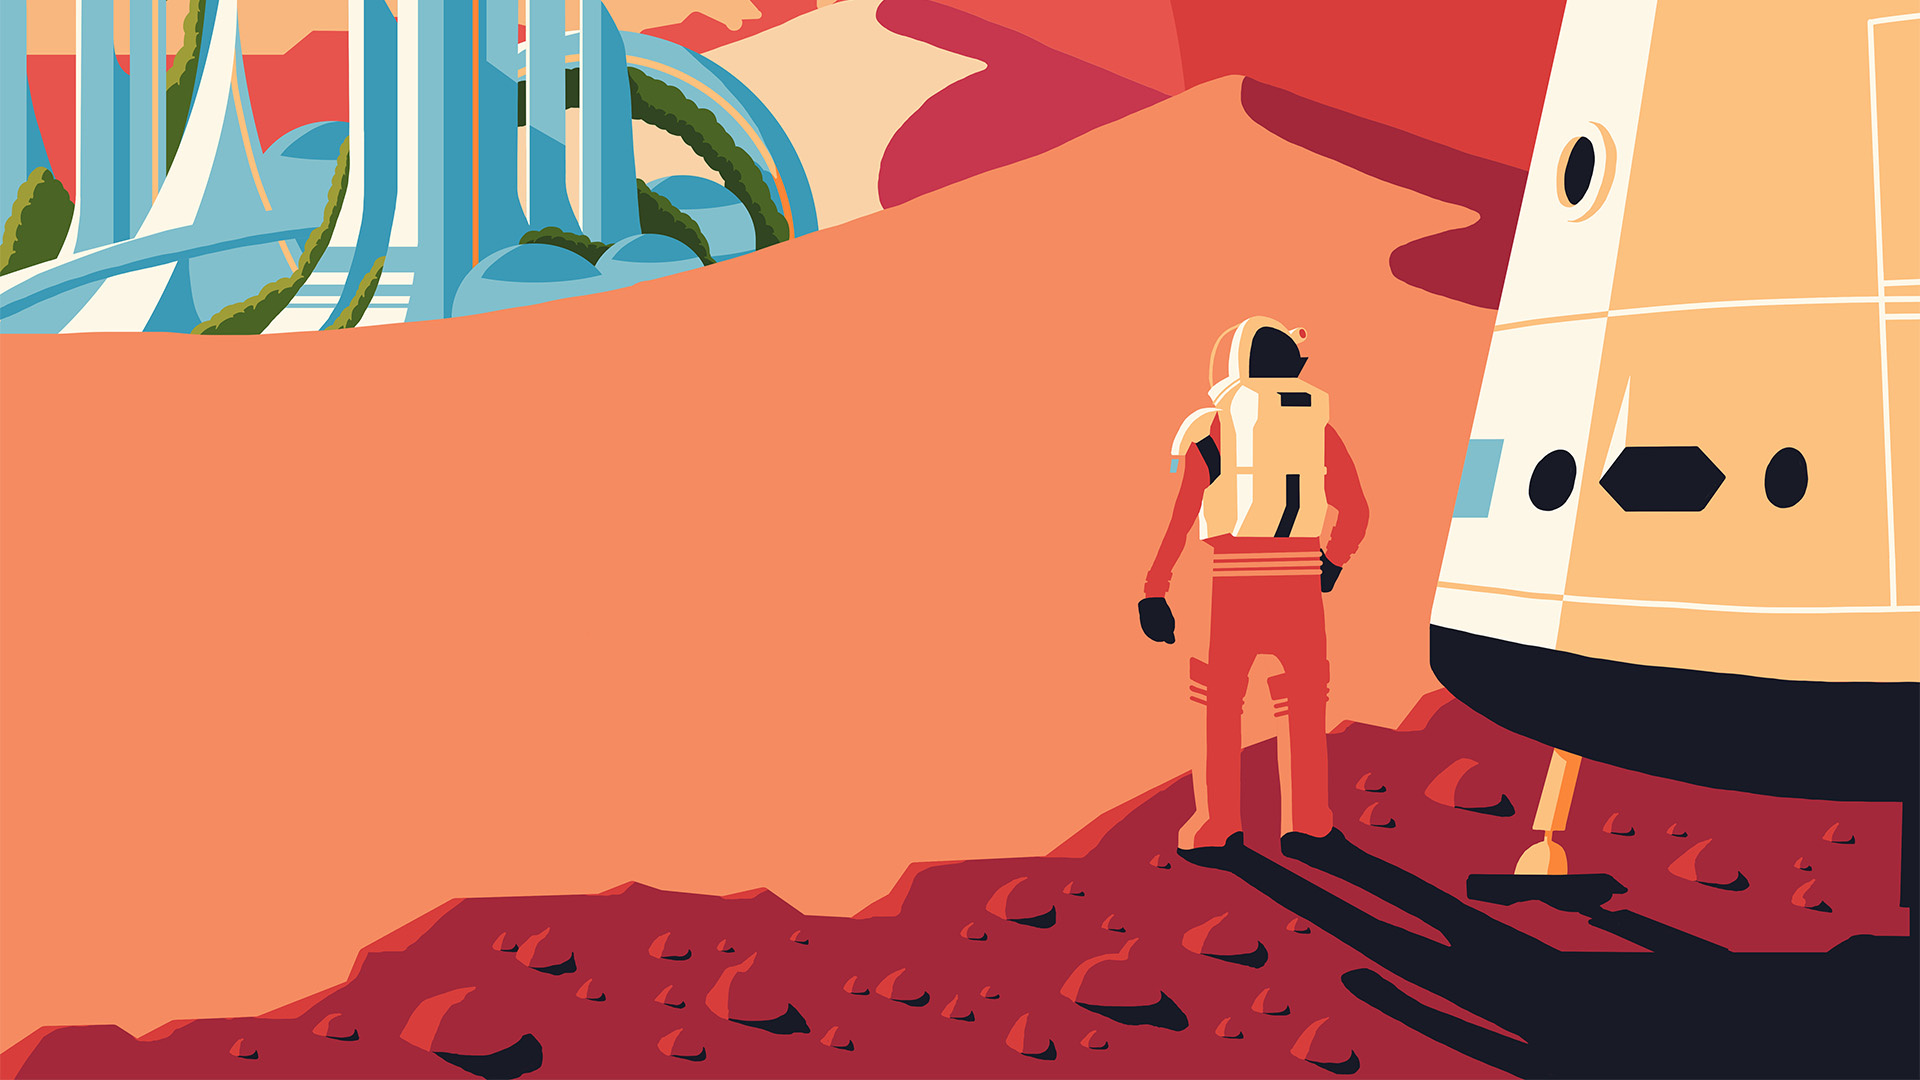 Illustration detail of an astronaut who just landed on a new planet